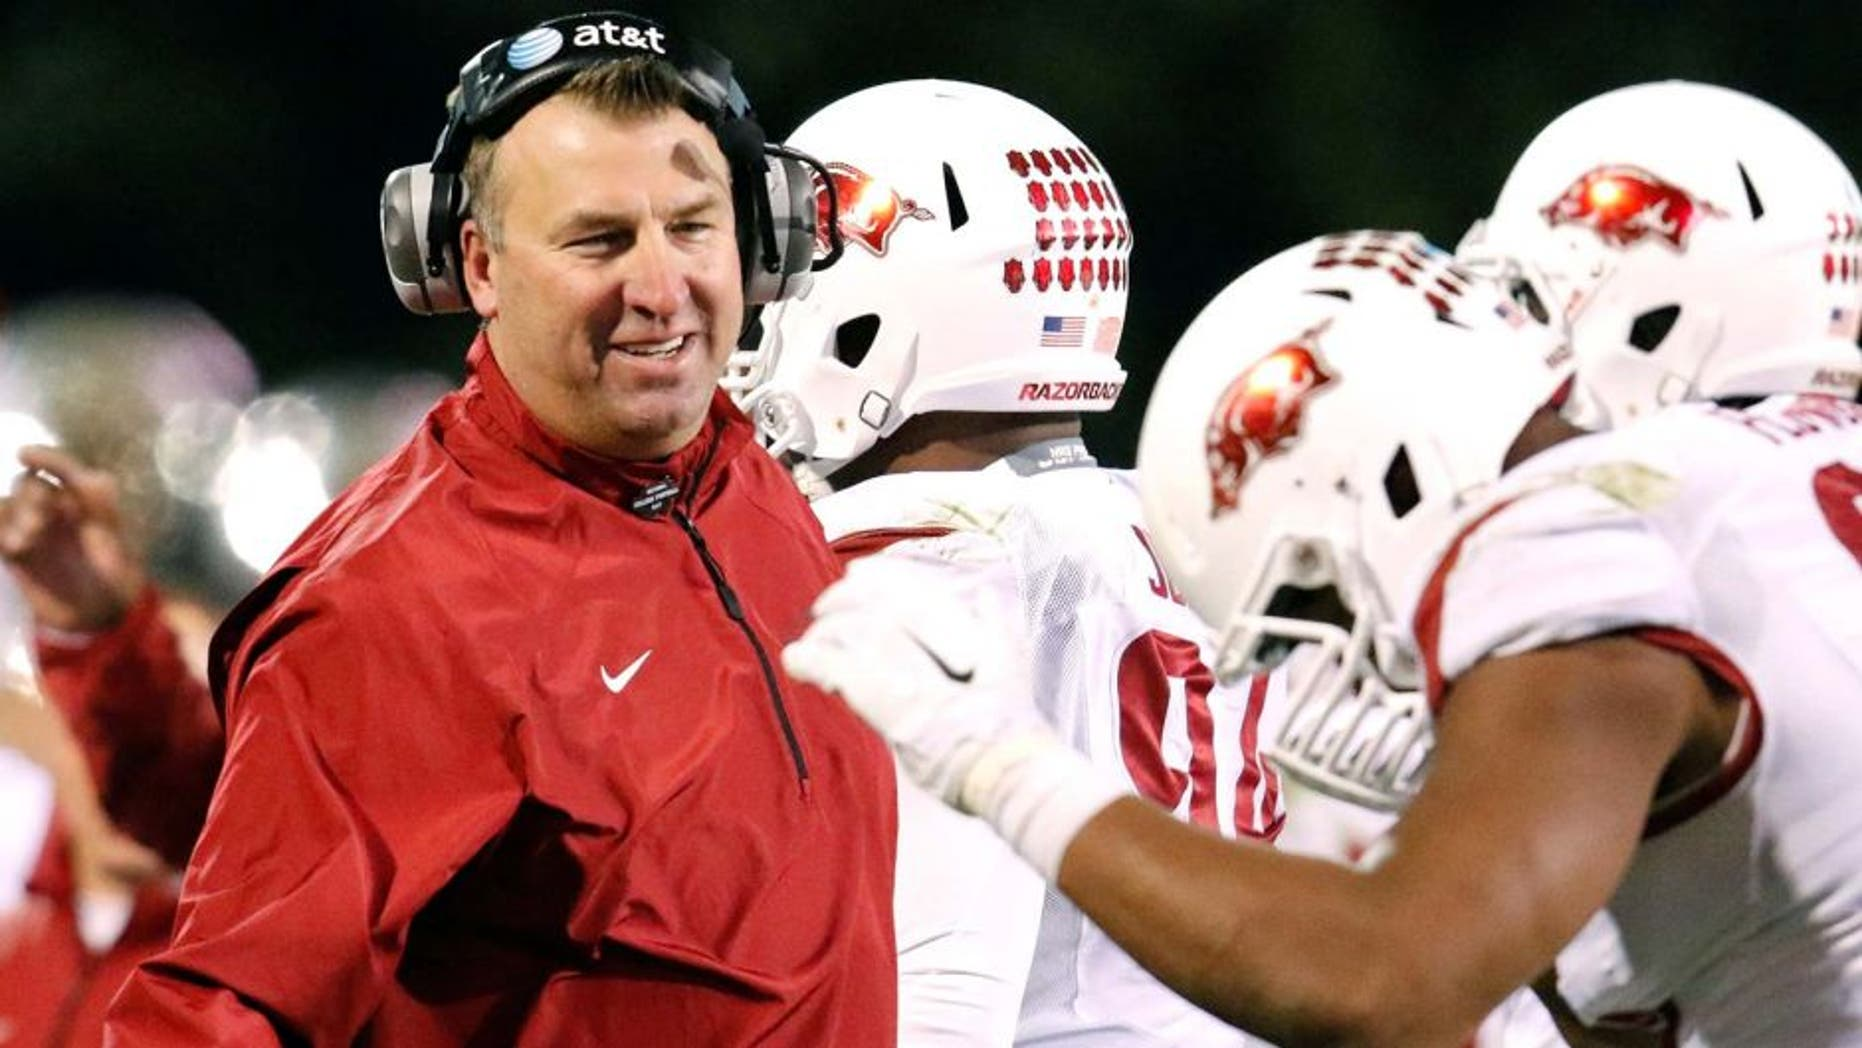 Nov 1, 2014; Starkville, MS, USA; Arkansas Razorbacks head coach Bret Bielema congratulates his players after a play during the game against the Mississippi State Bulldogs at Davis Wade Stadium. The Bulldogs defeat the Razorbacks 17-10. Mandatory Credit: Marvin Gentry-USA TODAY Sports